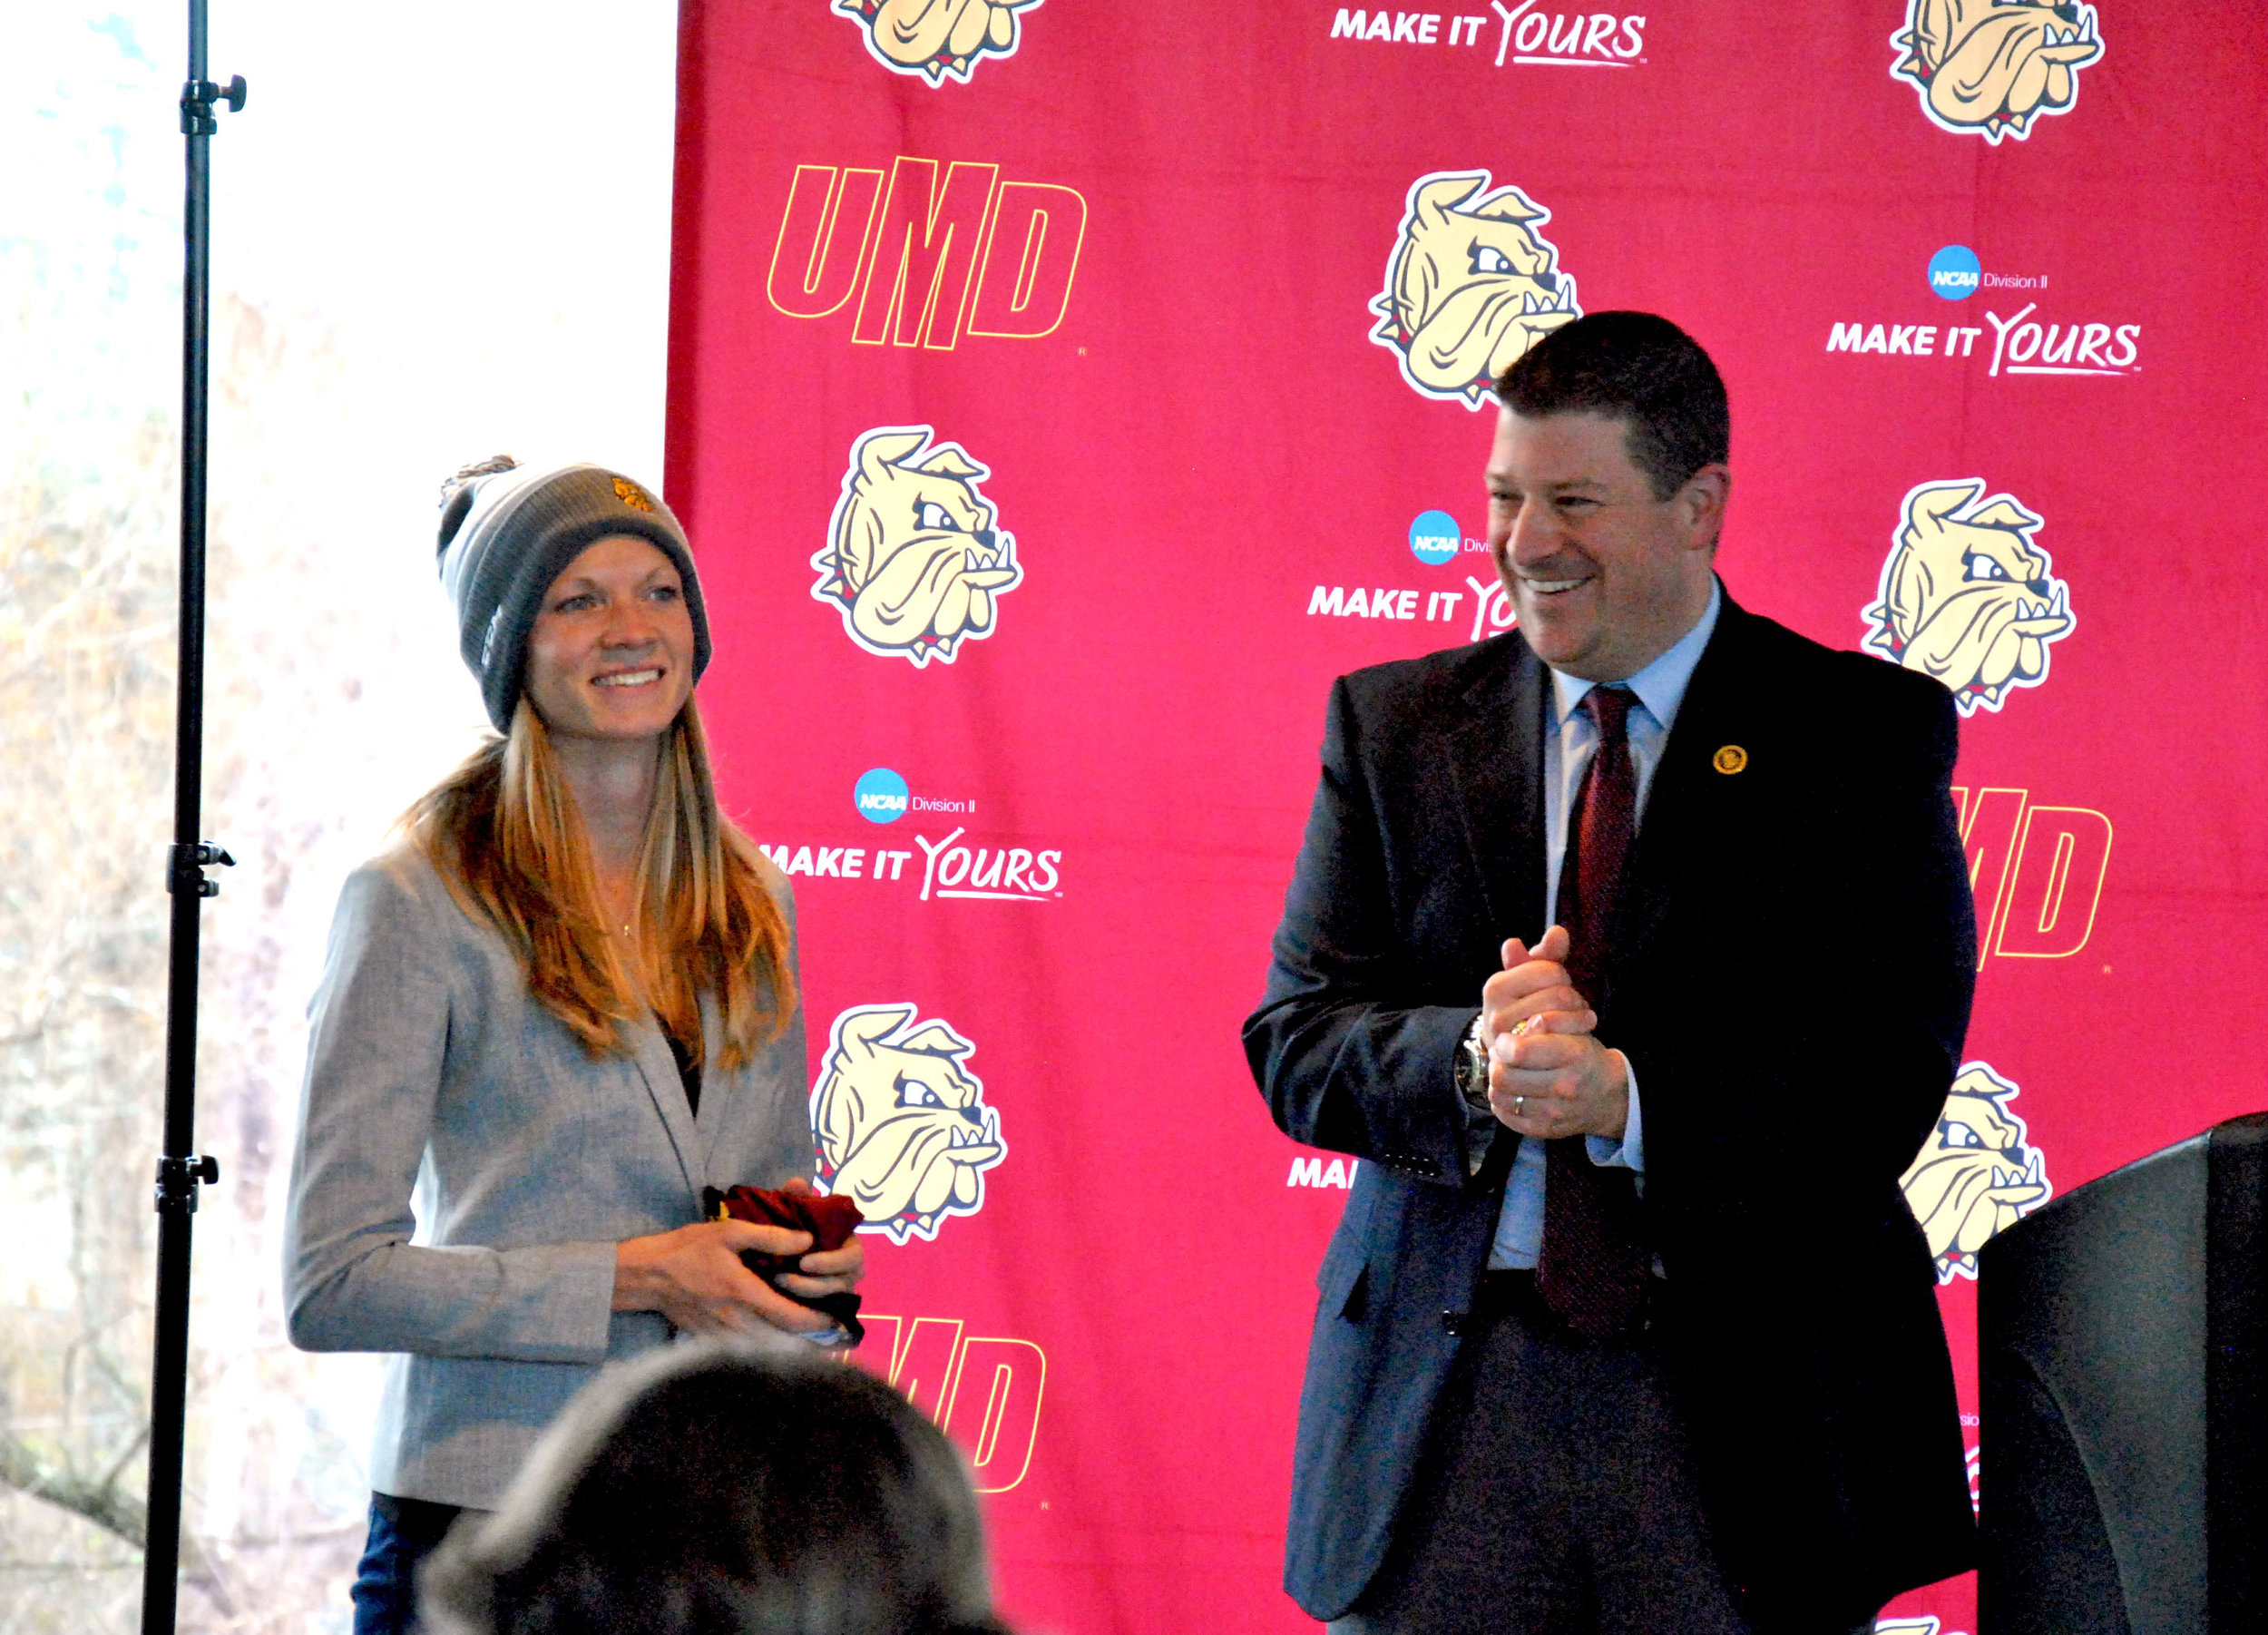 Harmon has coached the past three years in California and received a hat as a welcome gift. Photo by Rebecca Kottke